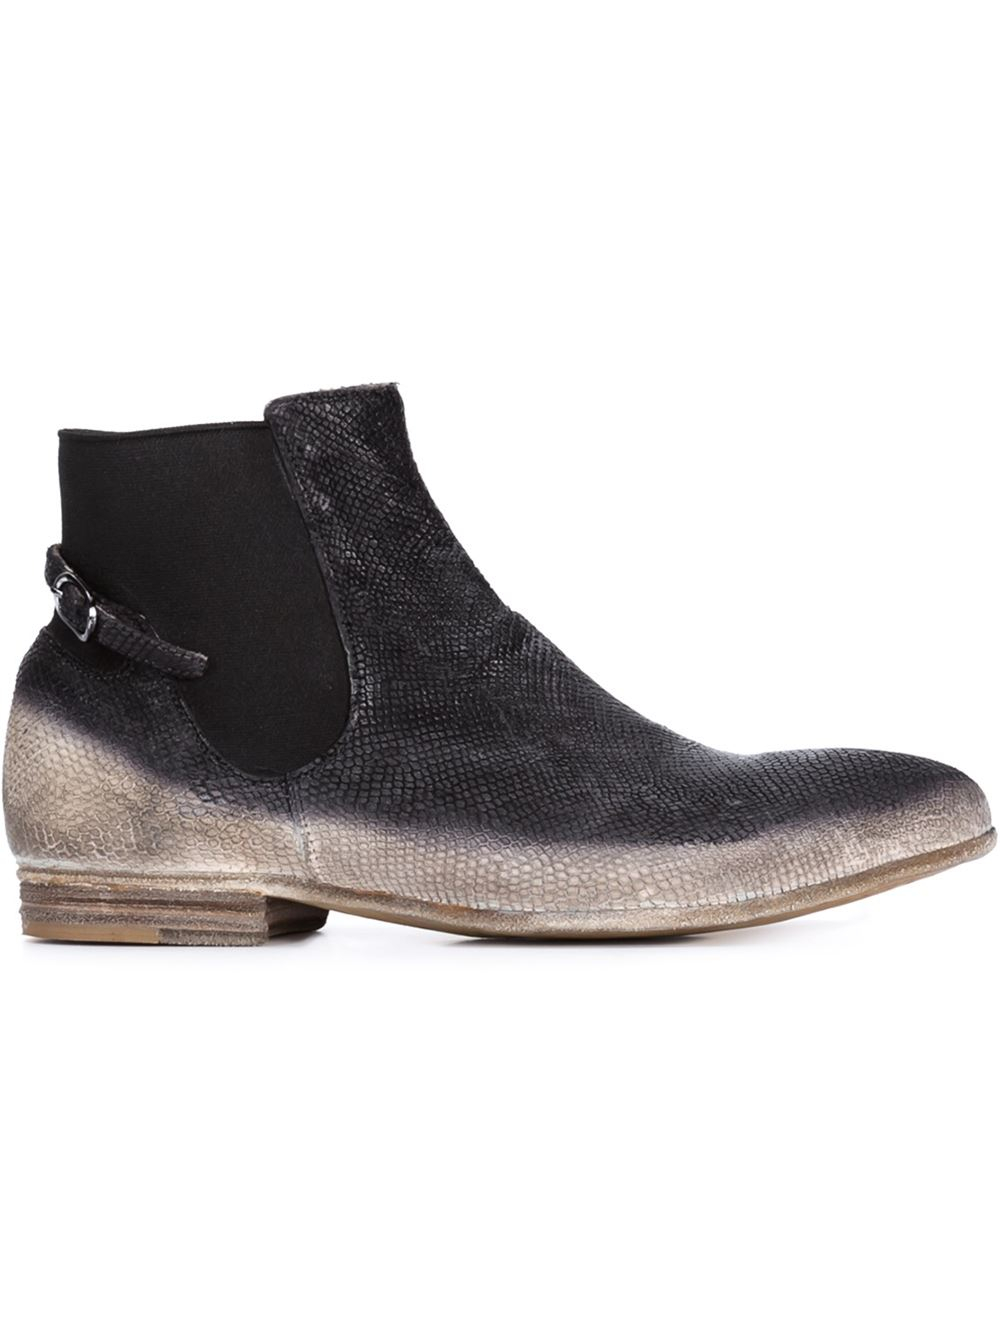 Excellent Officine Creative Doillon Boots In Brown | Lyst